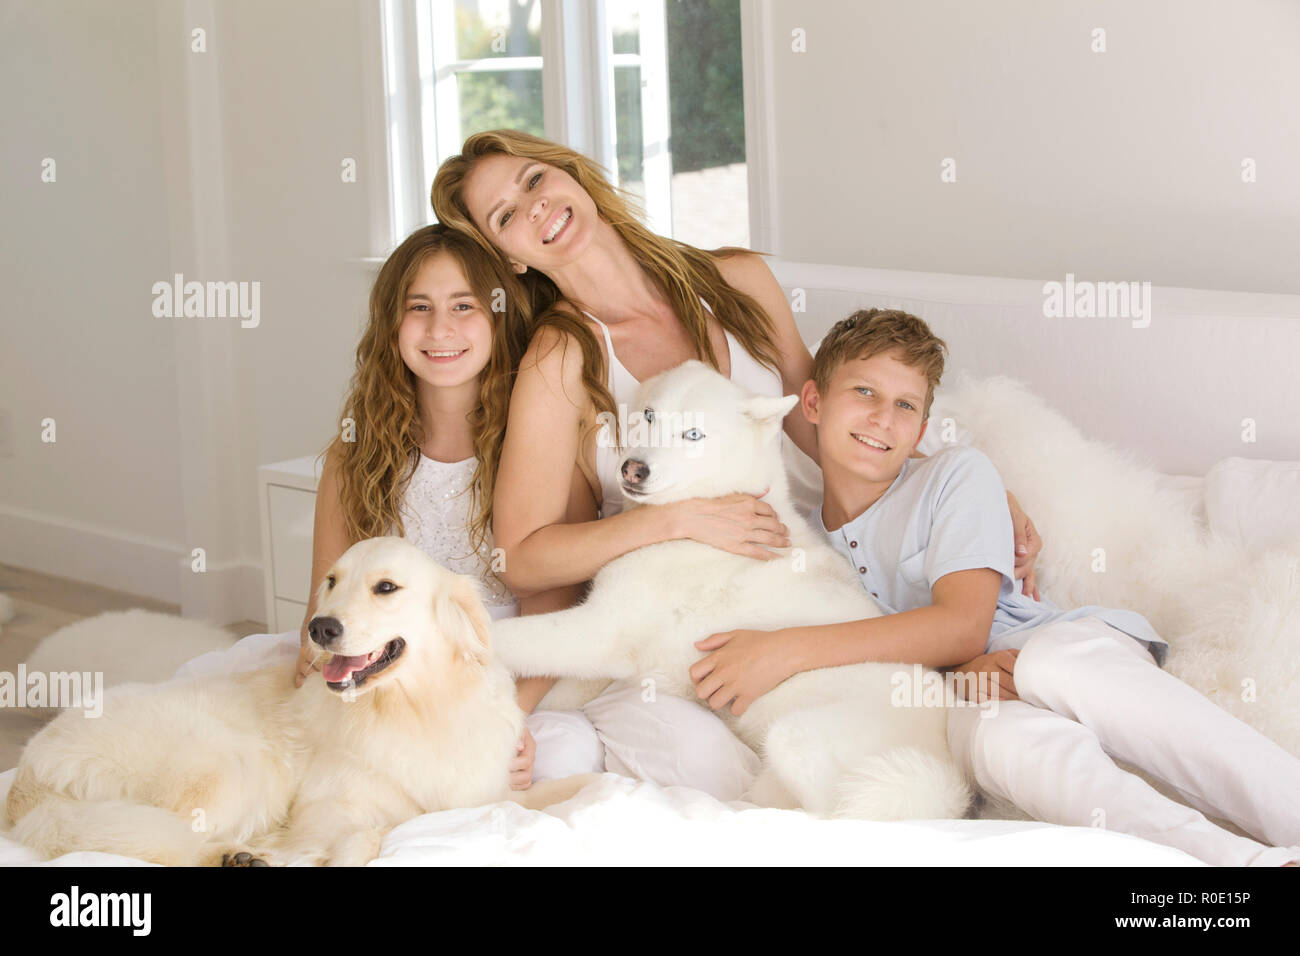 Happy Family Portrait of Mother with Two Young Children and Pet Dogs I - Stock Image